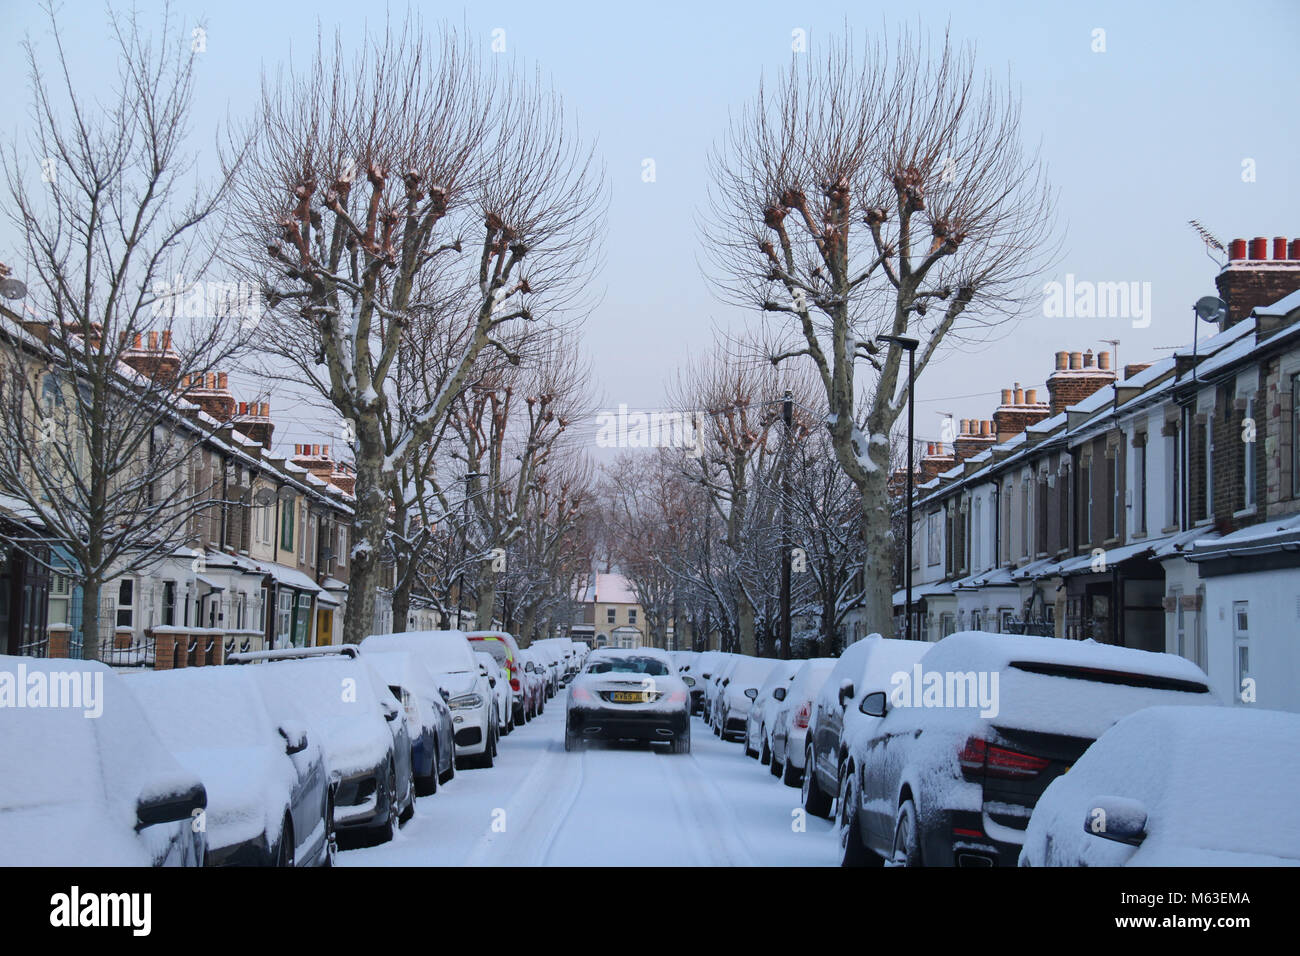 LONDON, UK - February 28: Streets of East London were covered with snow following a shower on 28 February. The Met - Stock Image